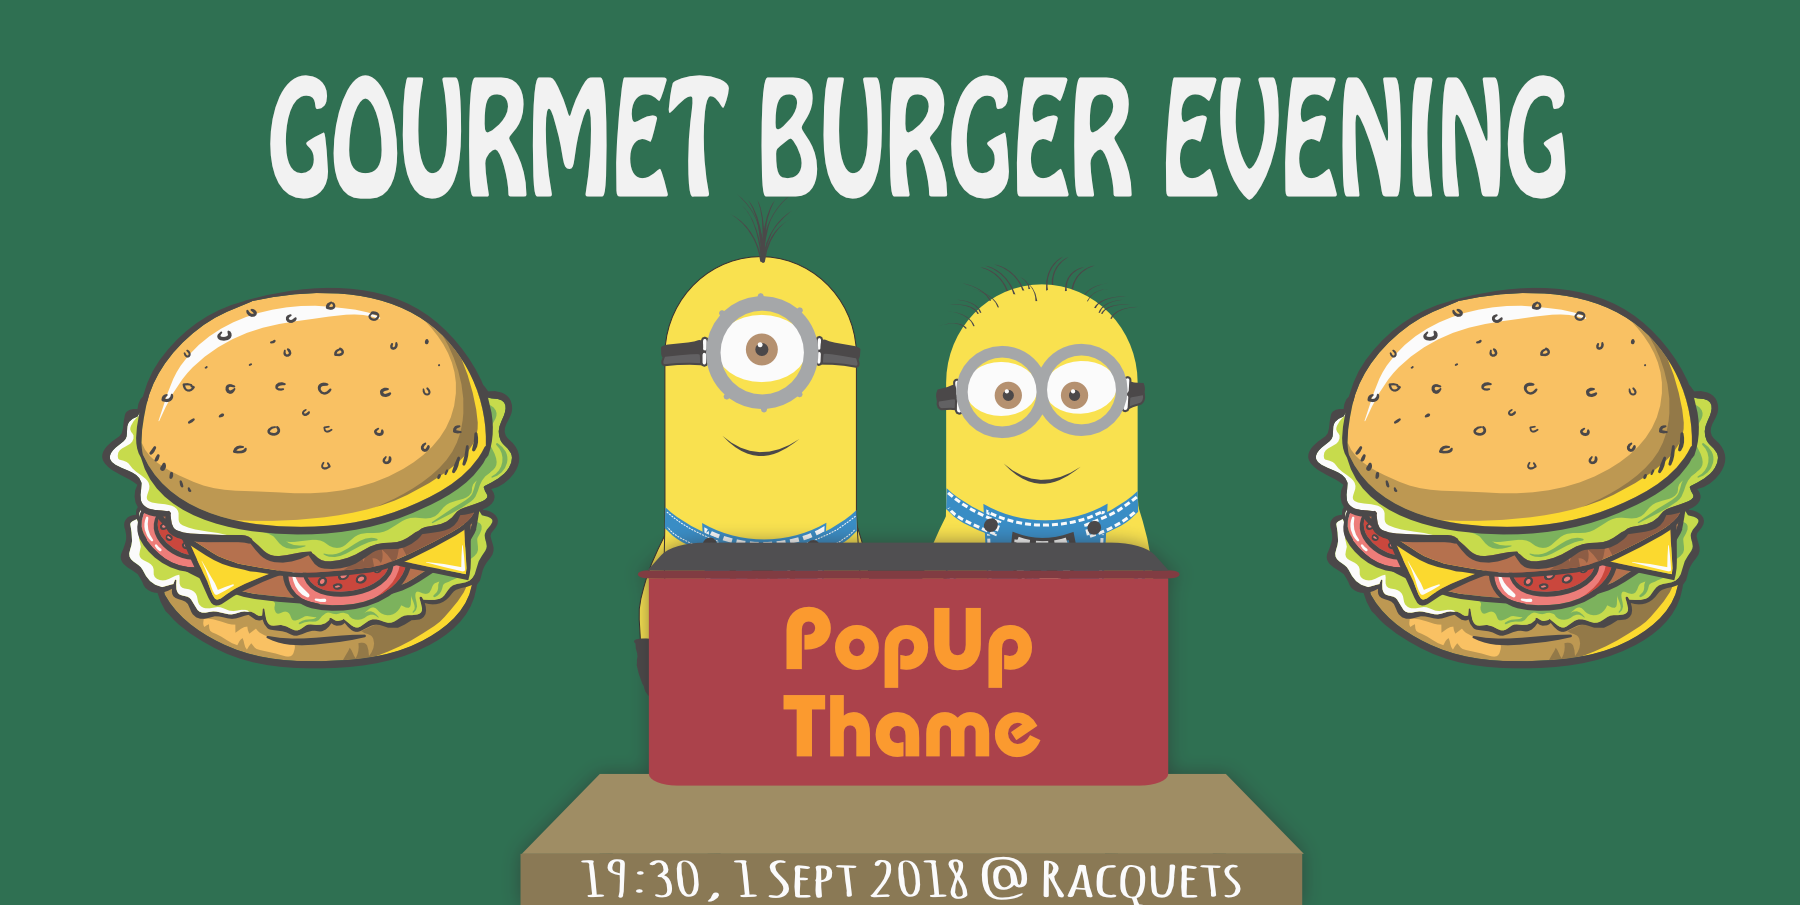 Gourmet Burger Evening at Racquets, Thame